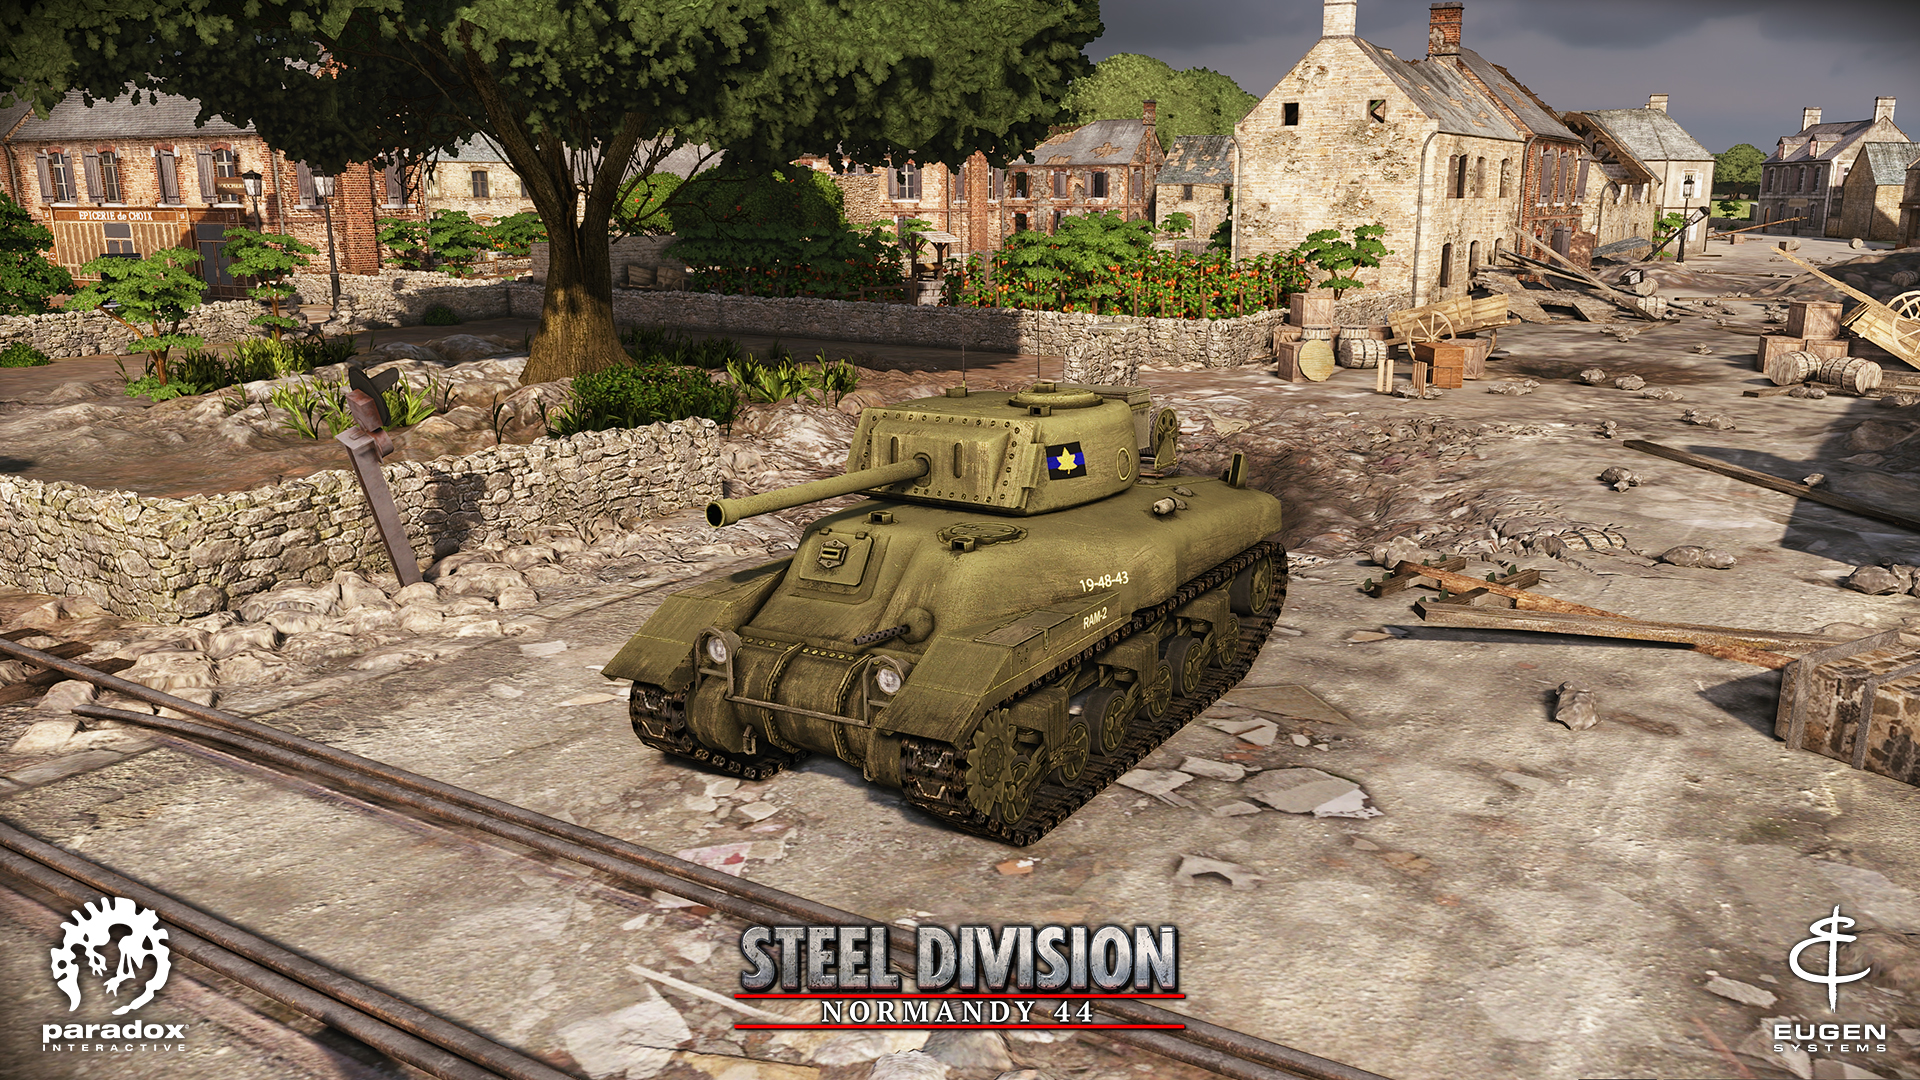 Steel Division Normandy 44 3rd Canadian